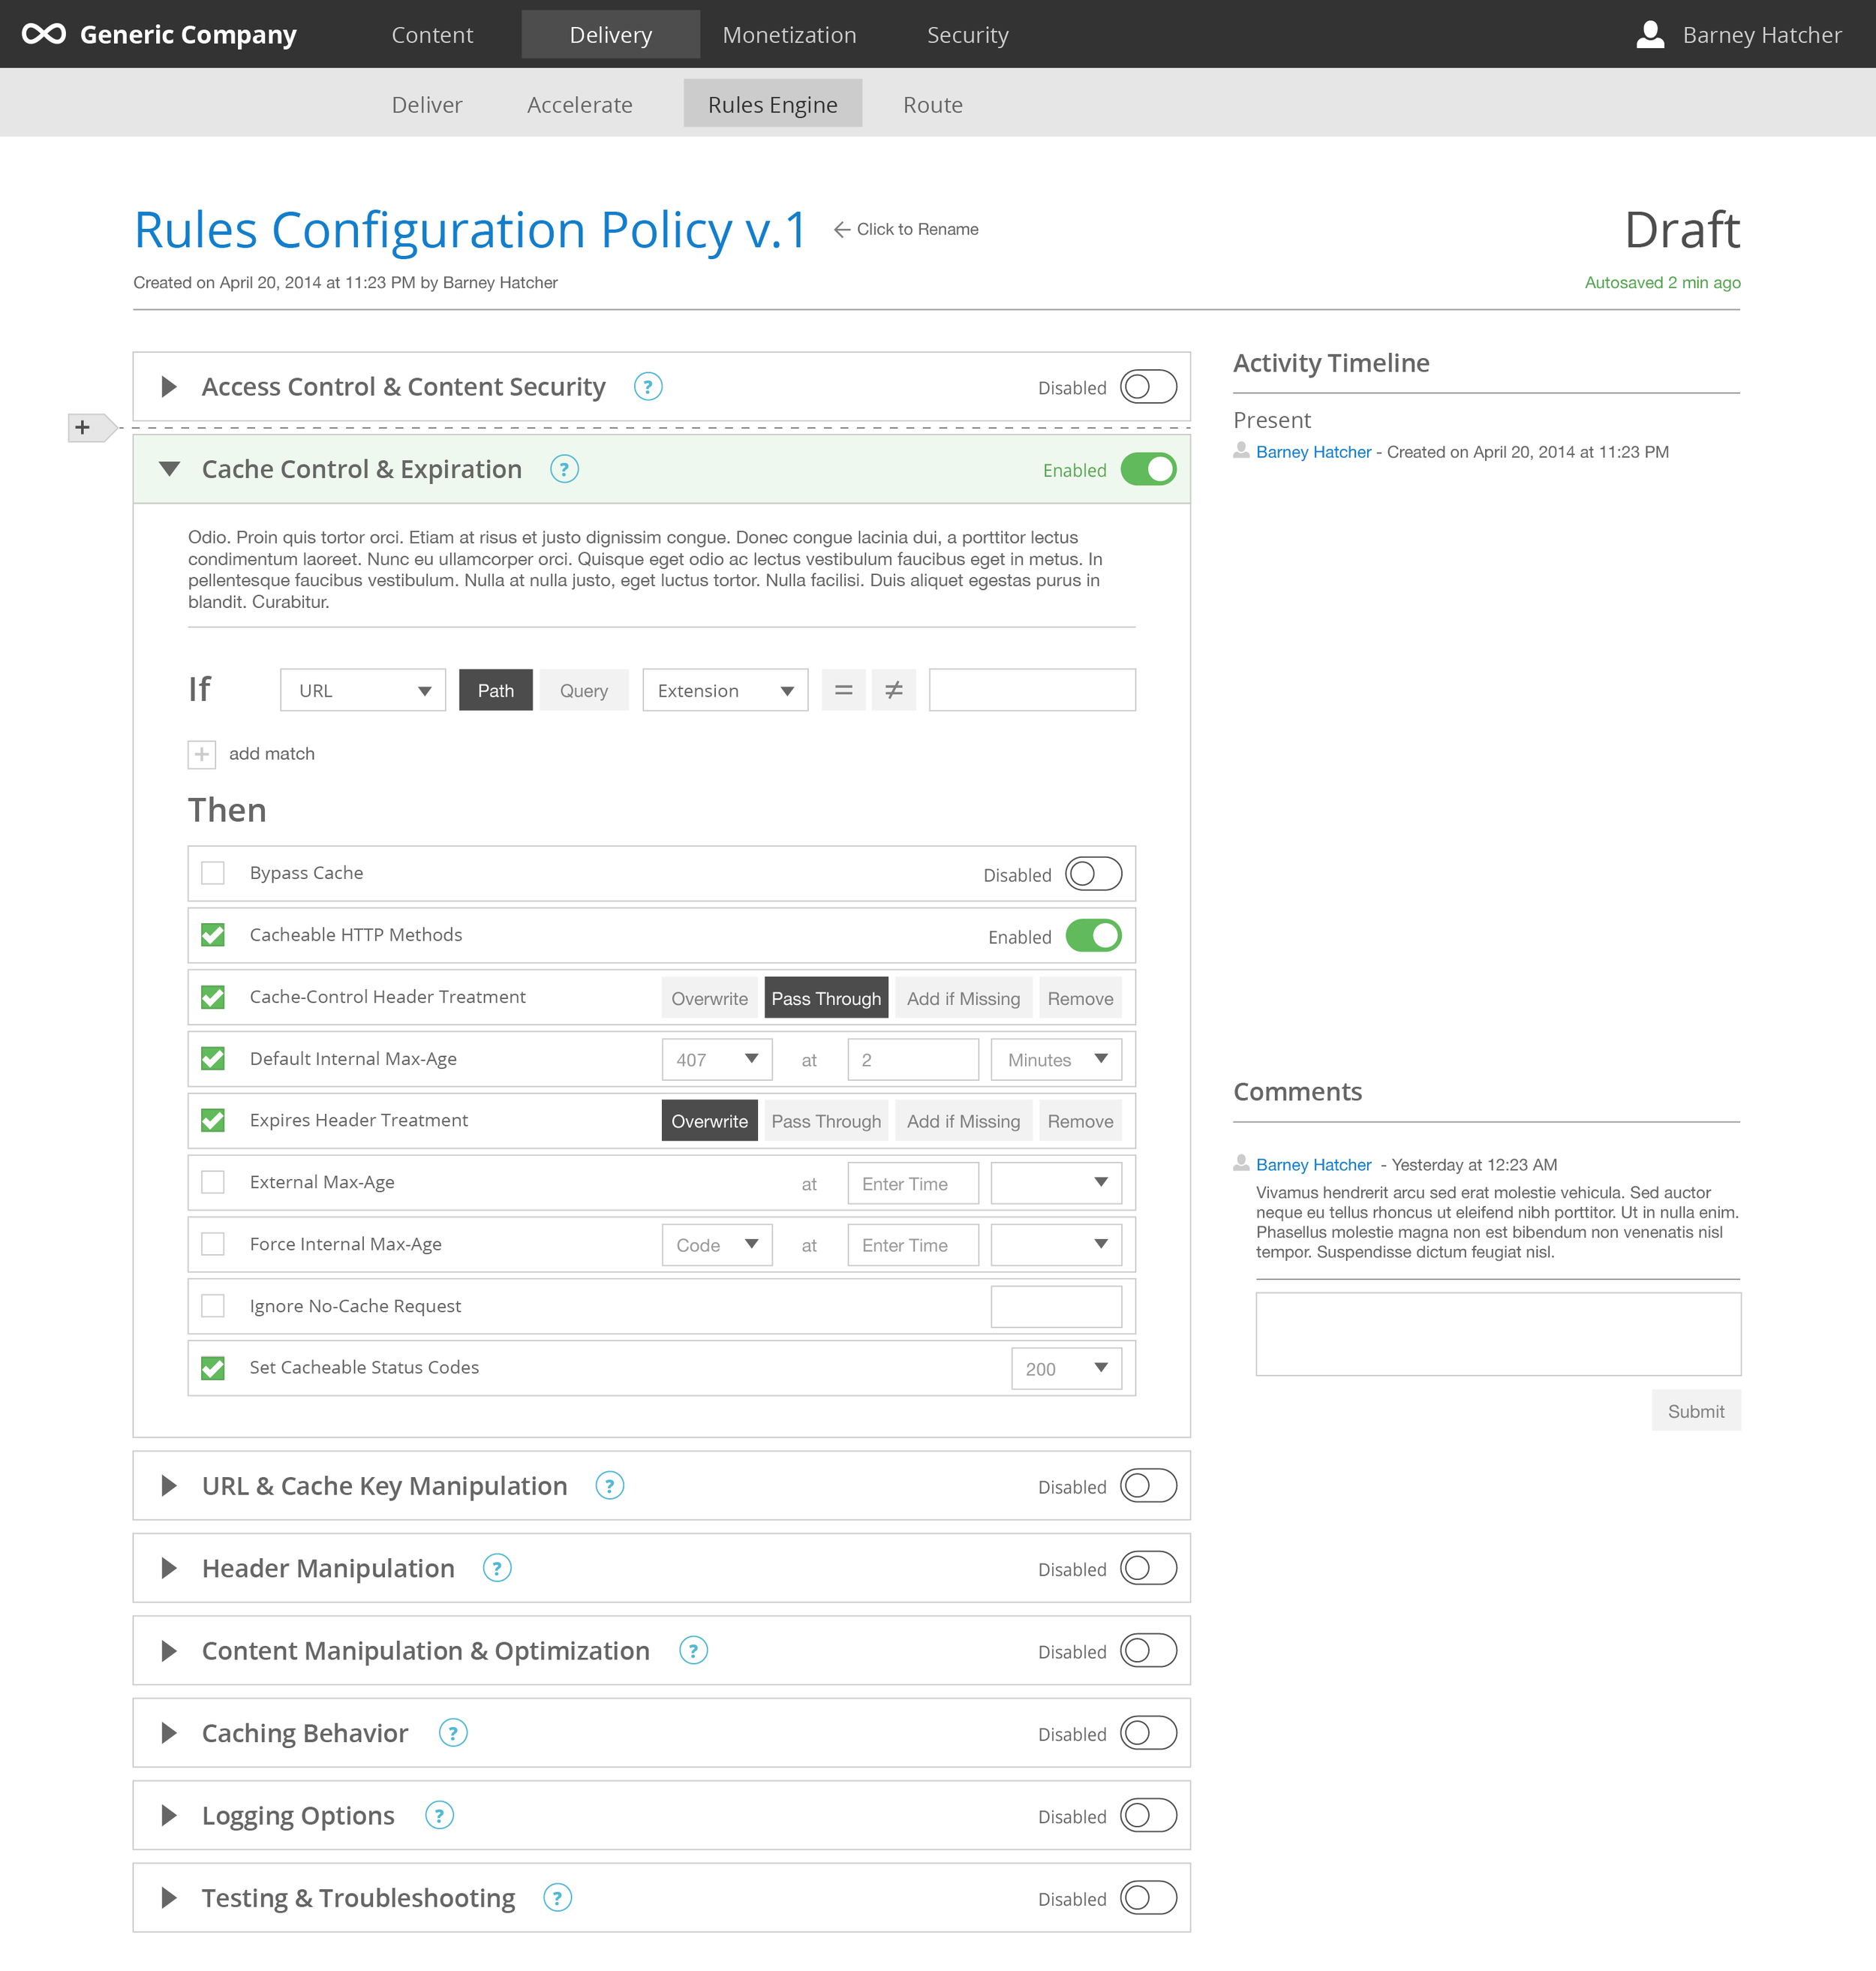 ux-rules-engine-v1_configuration policy-draft-1 enabled-features populated-match-url-extension-create group.png